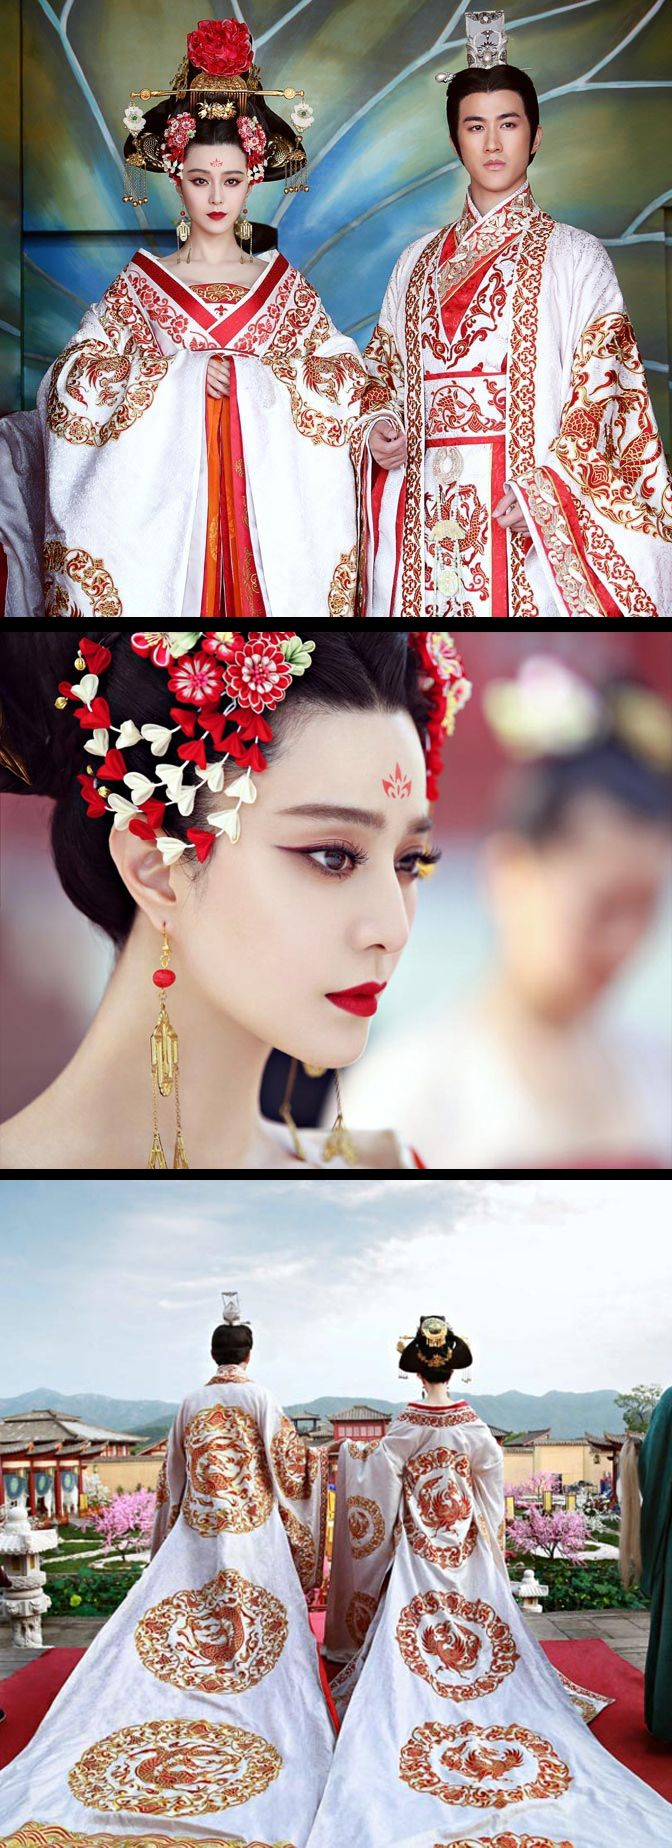 'The Empress of China'